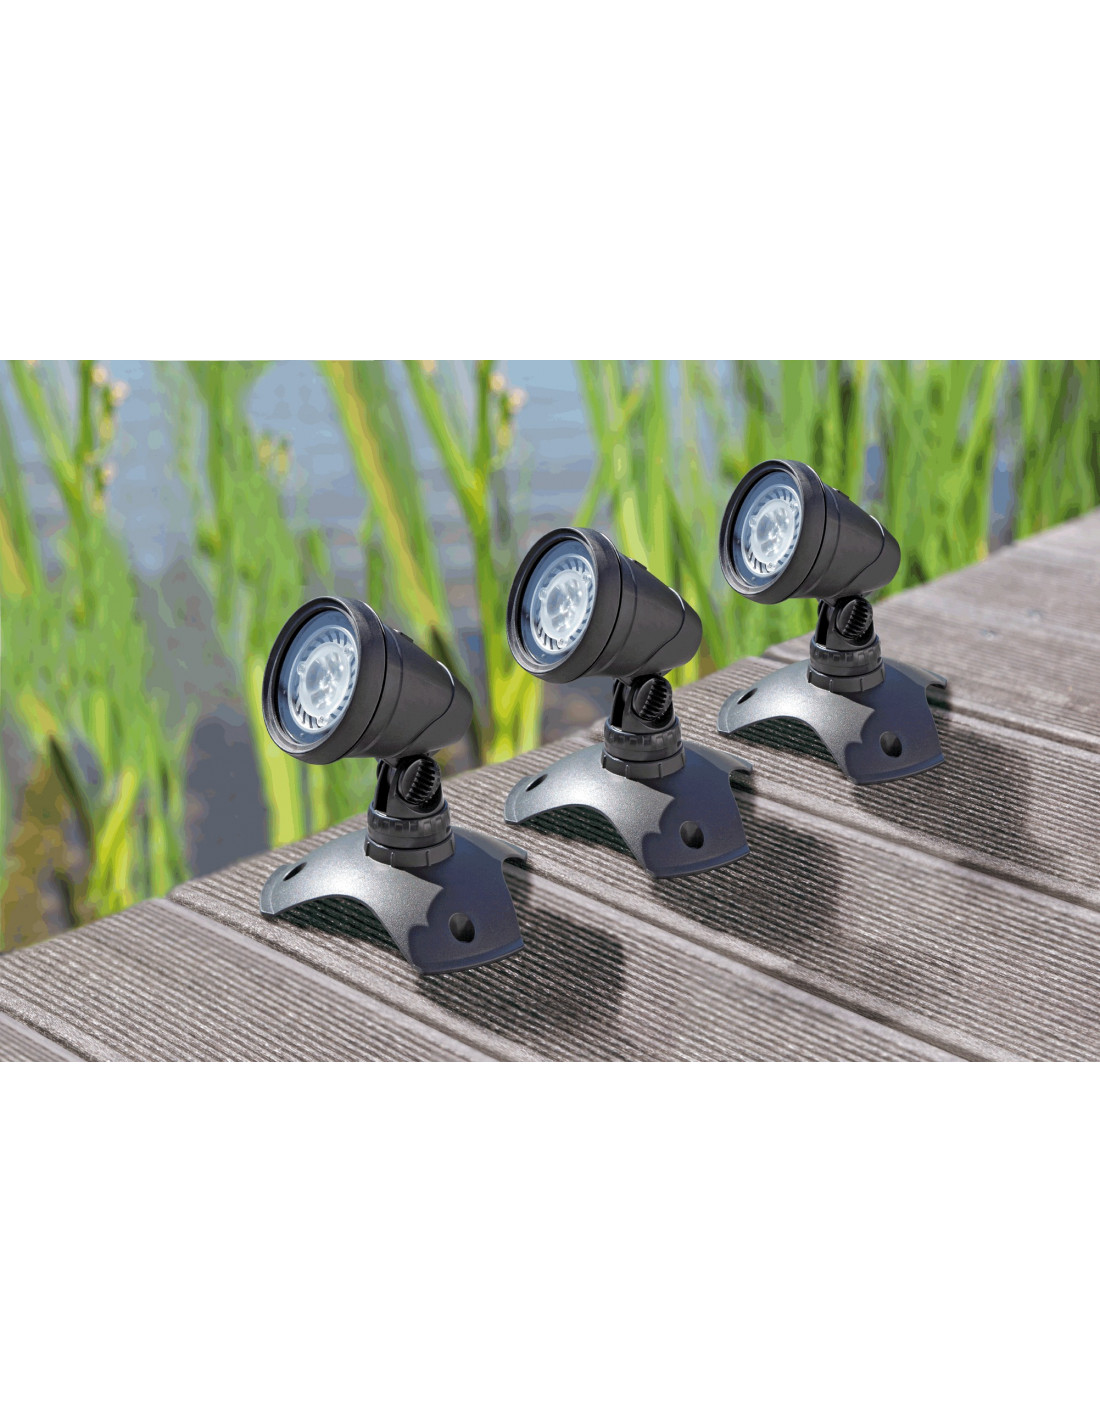 Lunaqua 3 led set 3 oase for Eclairage jardin led electrique